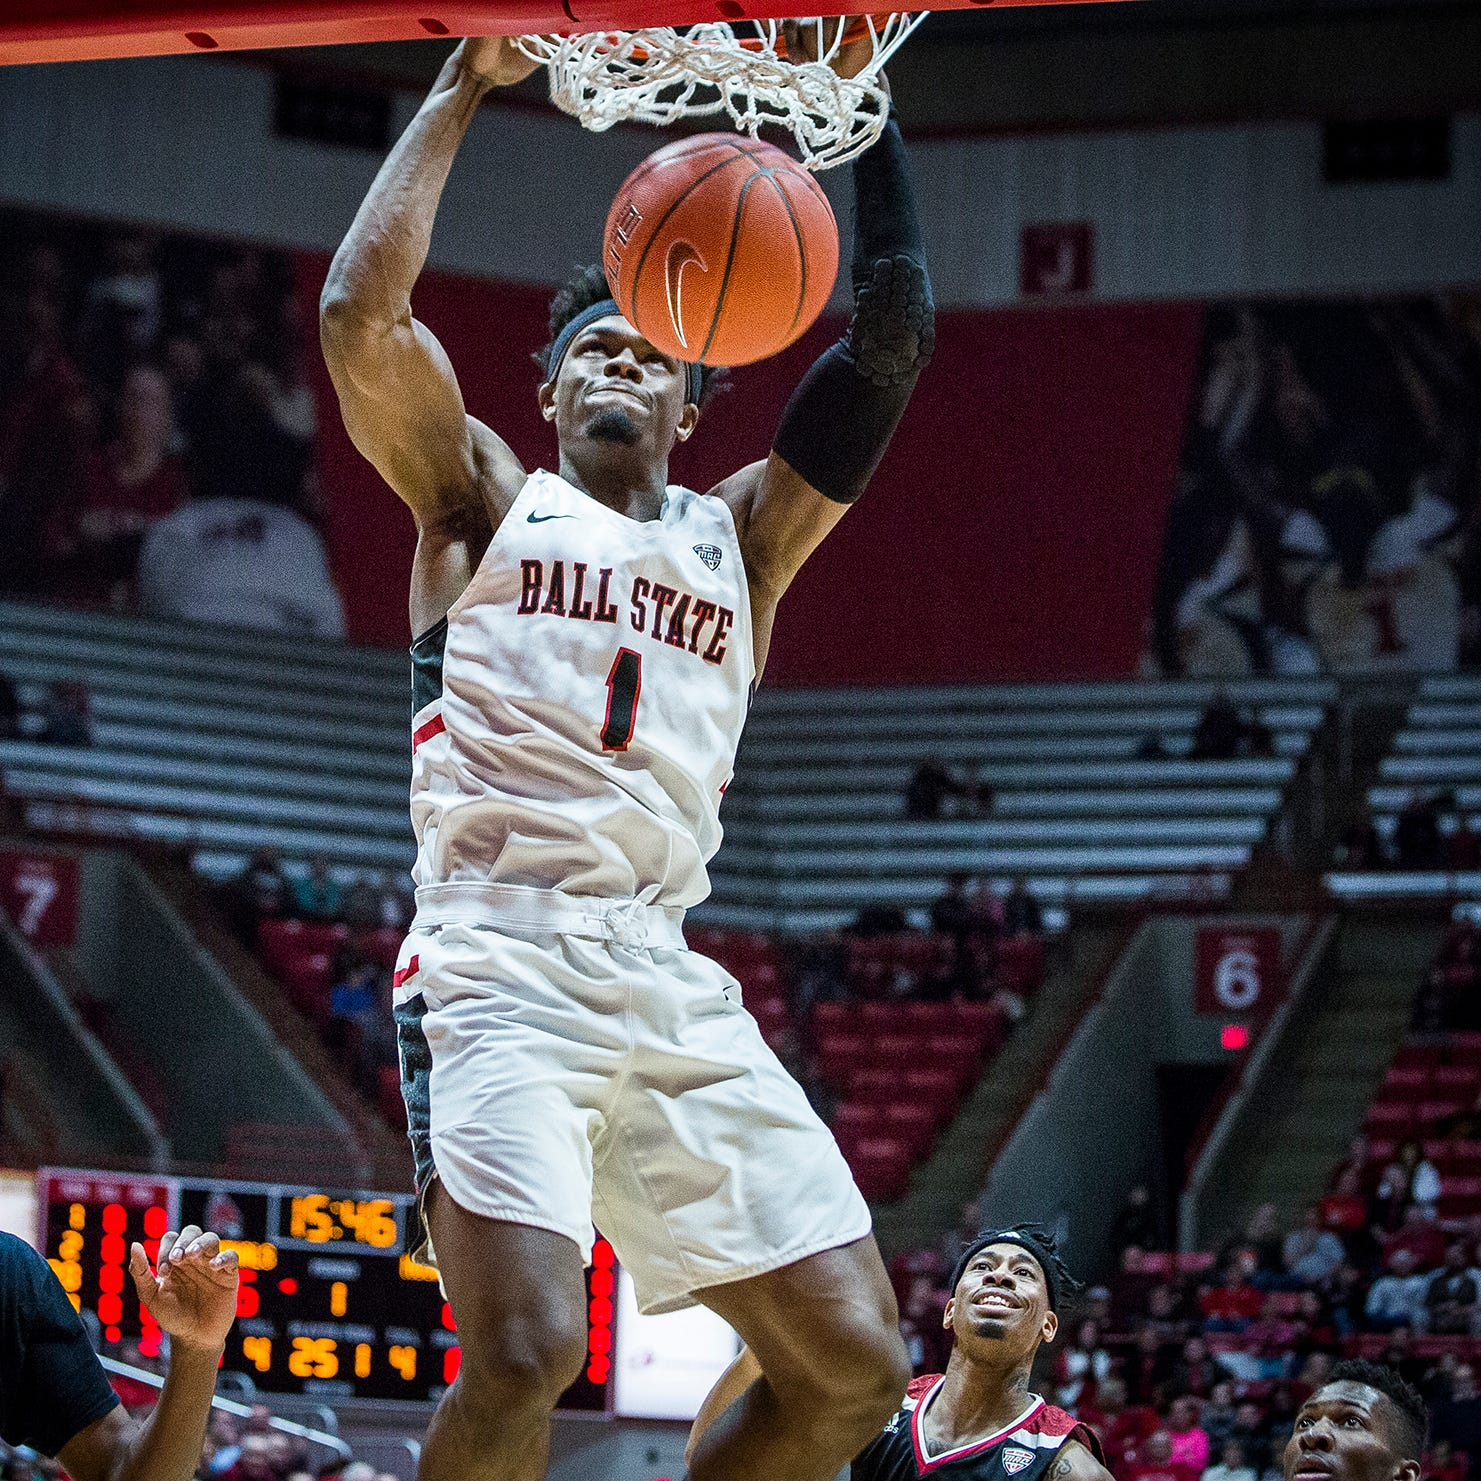 After 'complicated' regular season, can Ball State basketball make a run in MAC Tournament?